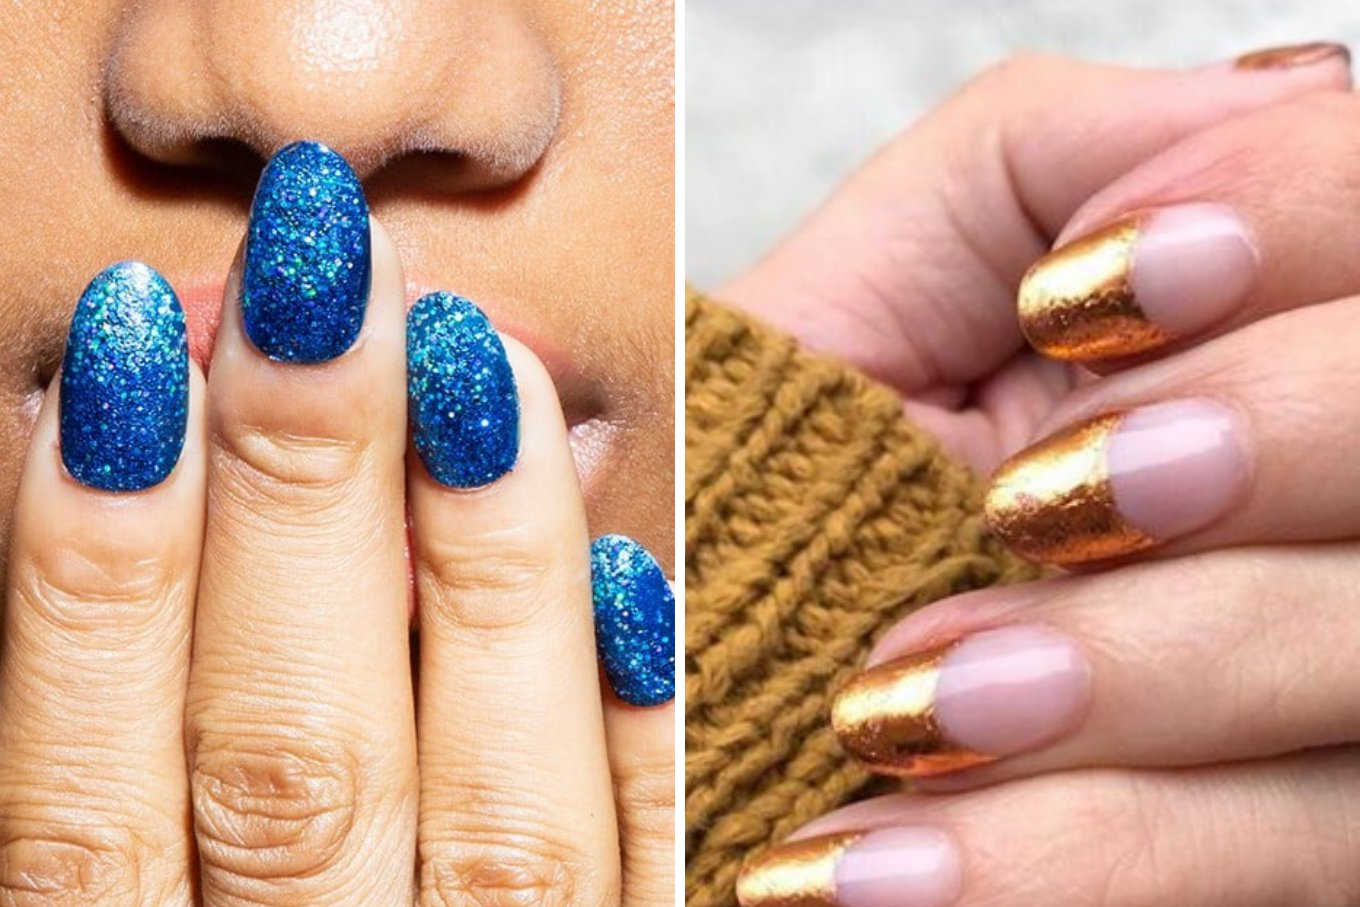 Videos Uñas Acrilicas Decoradas Las 7 Tendencias Para Uñas Decoradas En 2019 Ellas Hablan